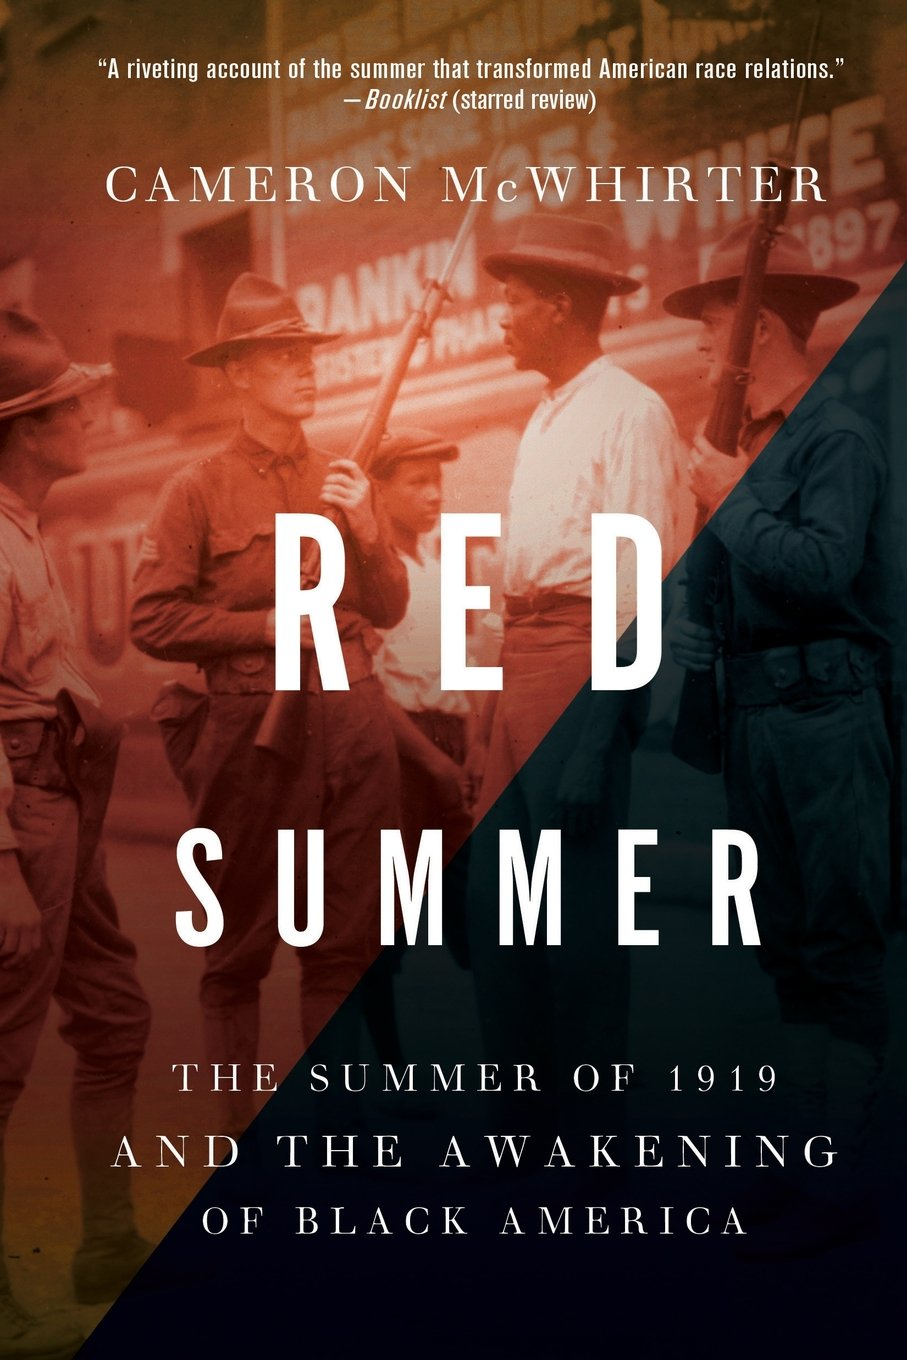 red summer the summer of 1919 and the awakening of black america by cameron mcwhirter book cover